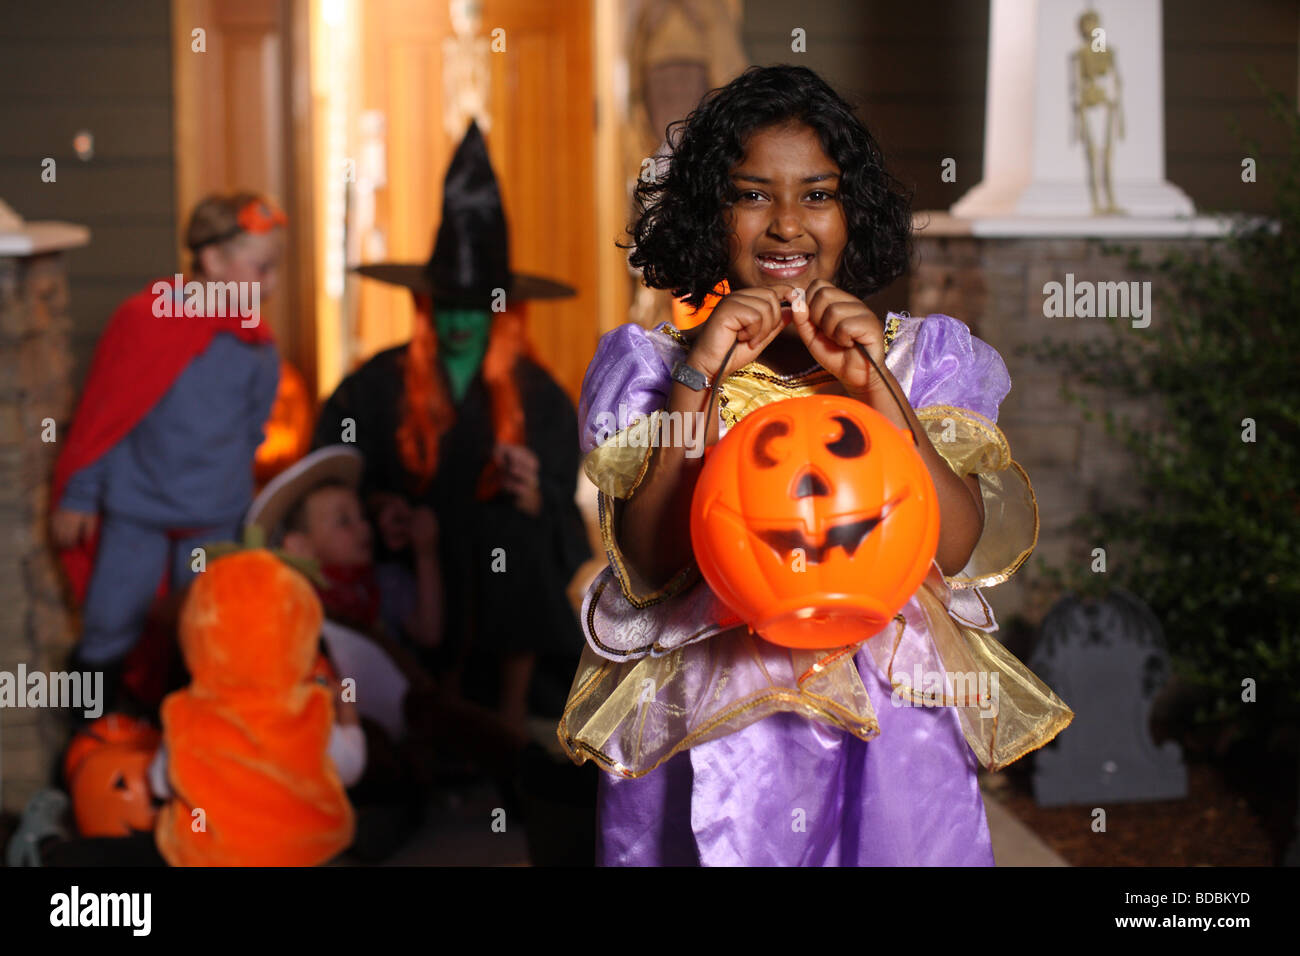 Jeune fille en costume de Halloween party Photo Stock